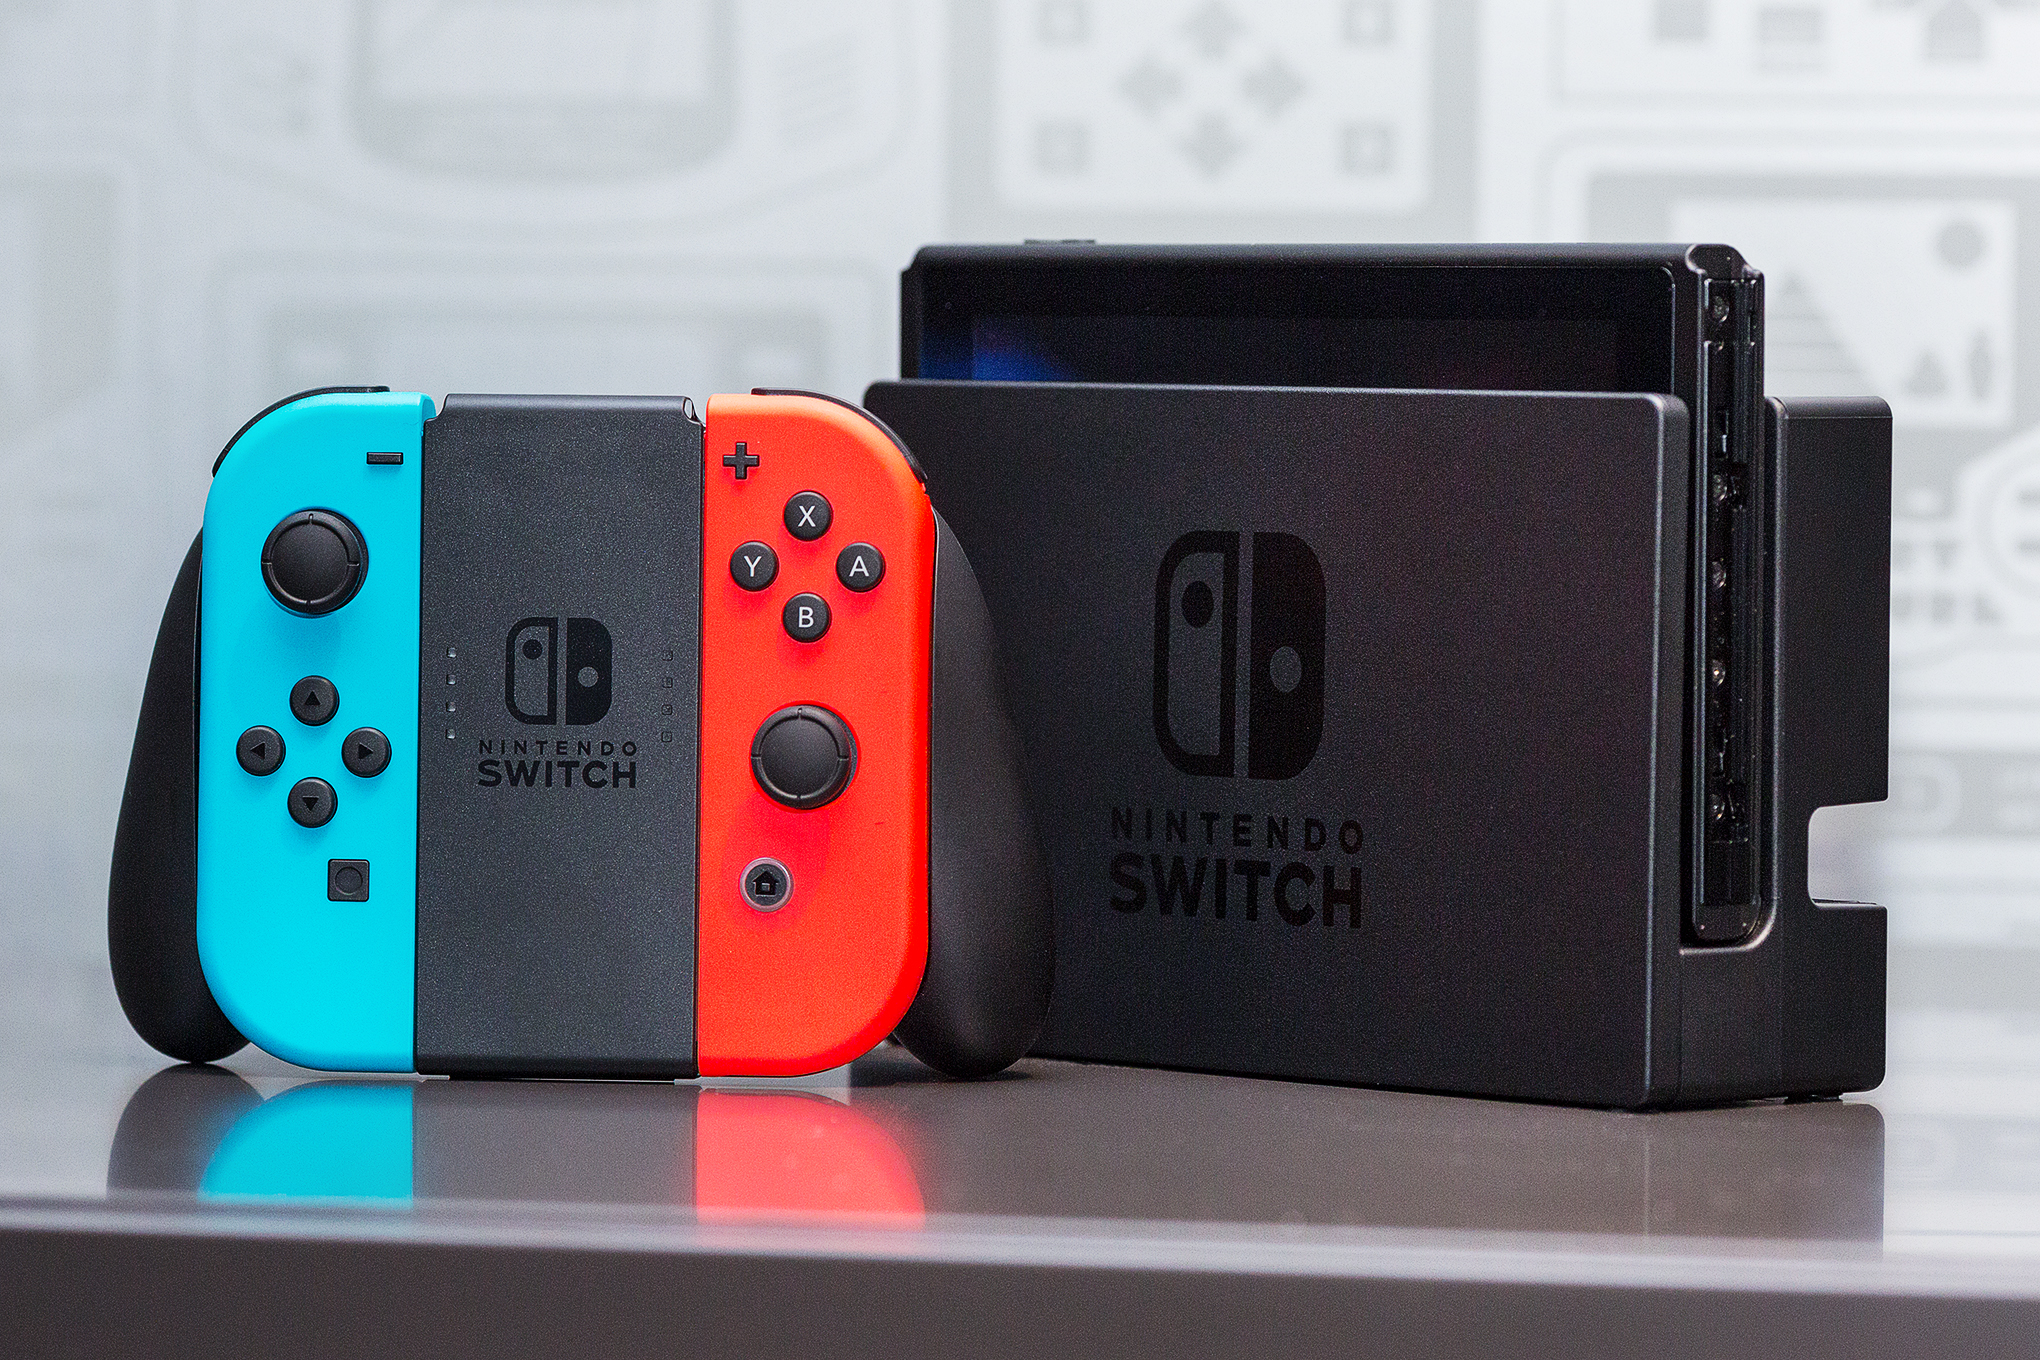 Upgrade your Nintendo Switch with our favorite accessories